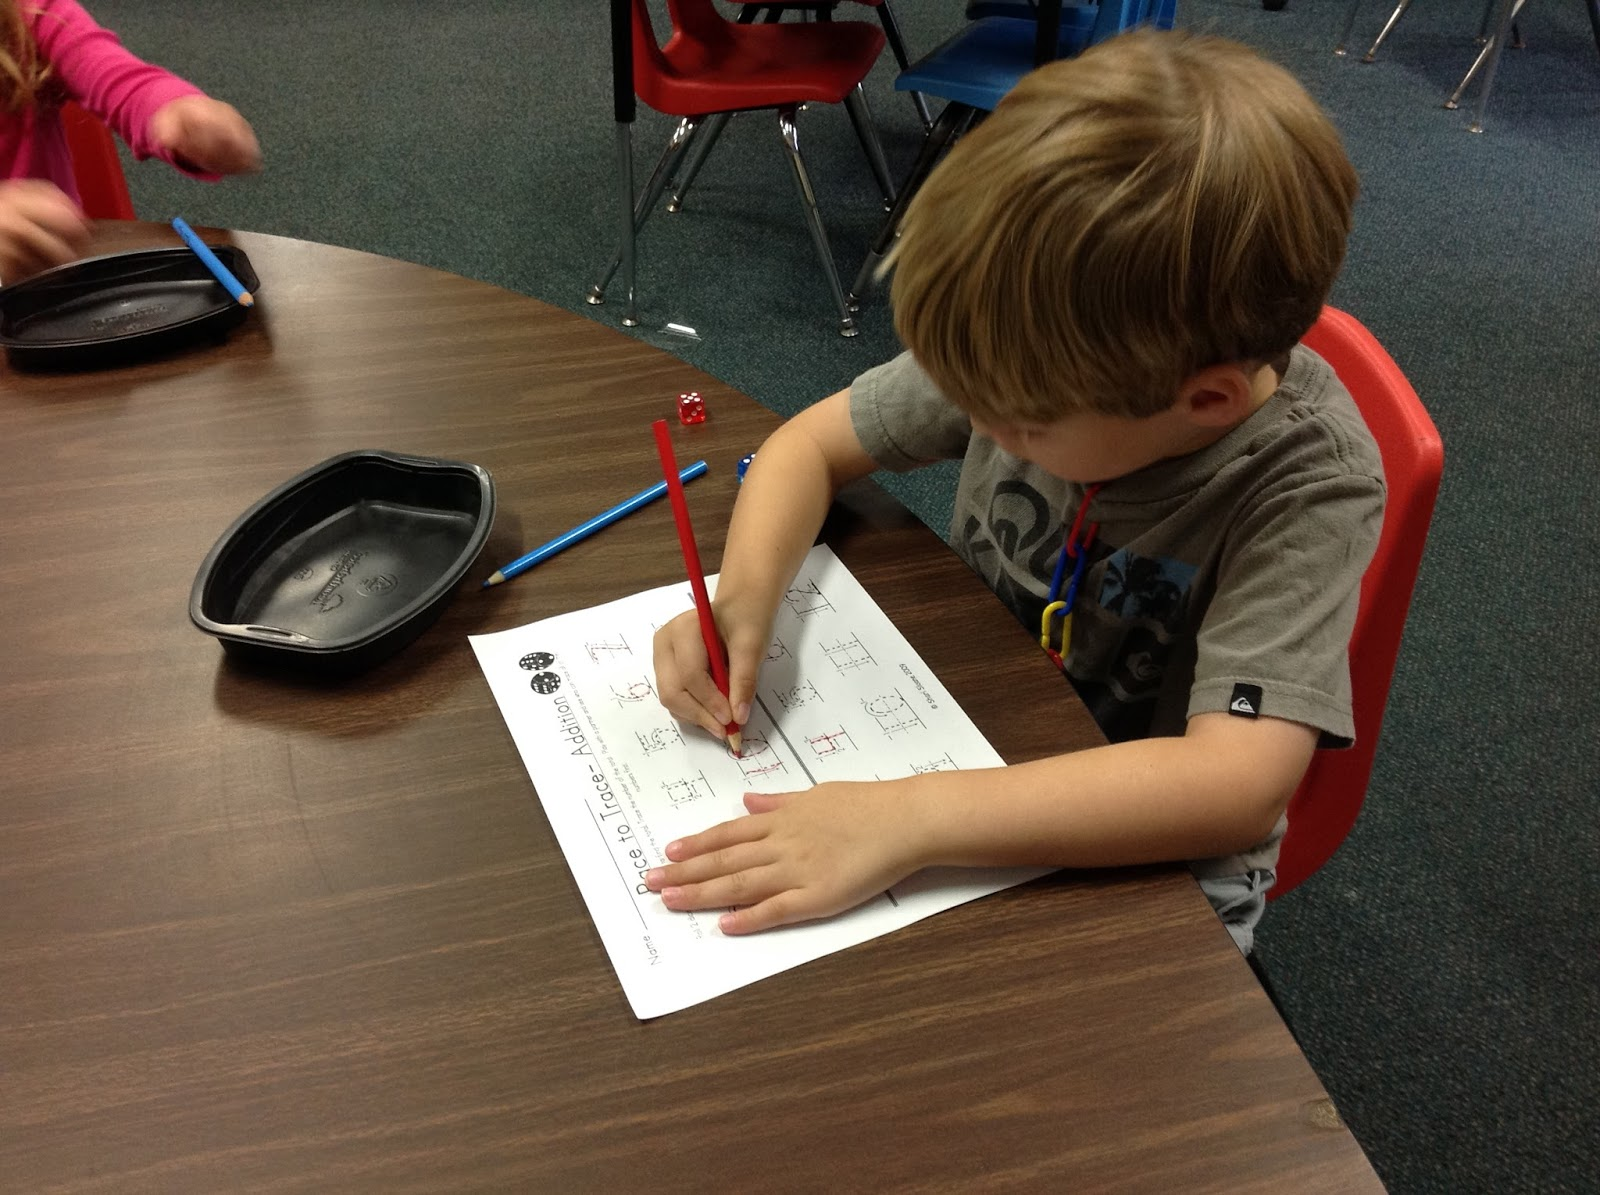 another helping of math please roll and trace kindergarteners are learning so much we forget how easy it is for most of us to and write our numbers 1 20 we know our numbers